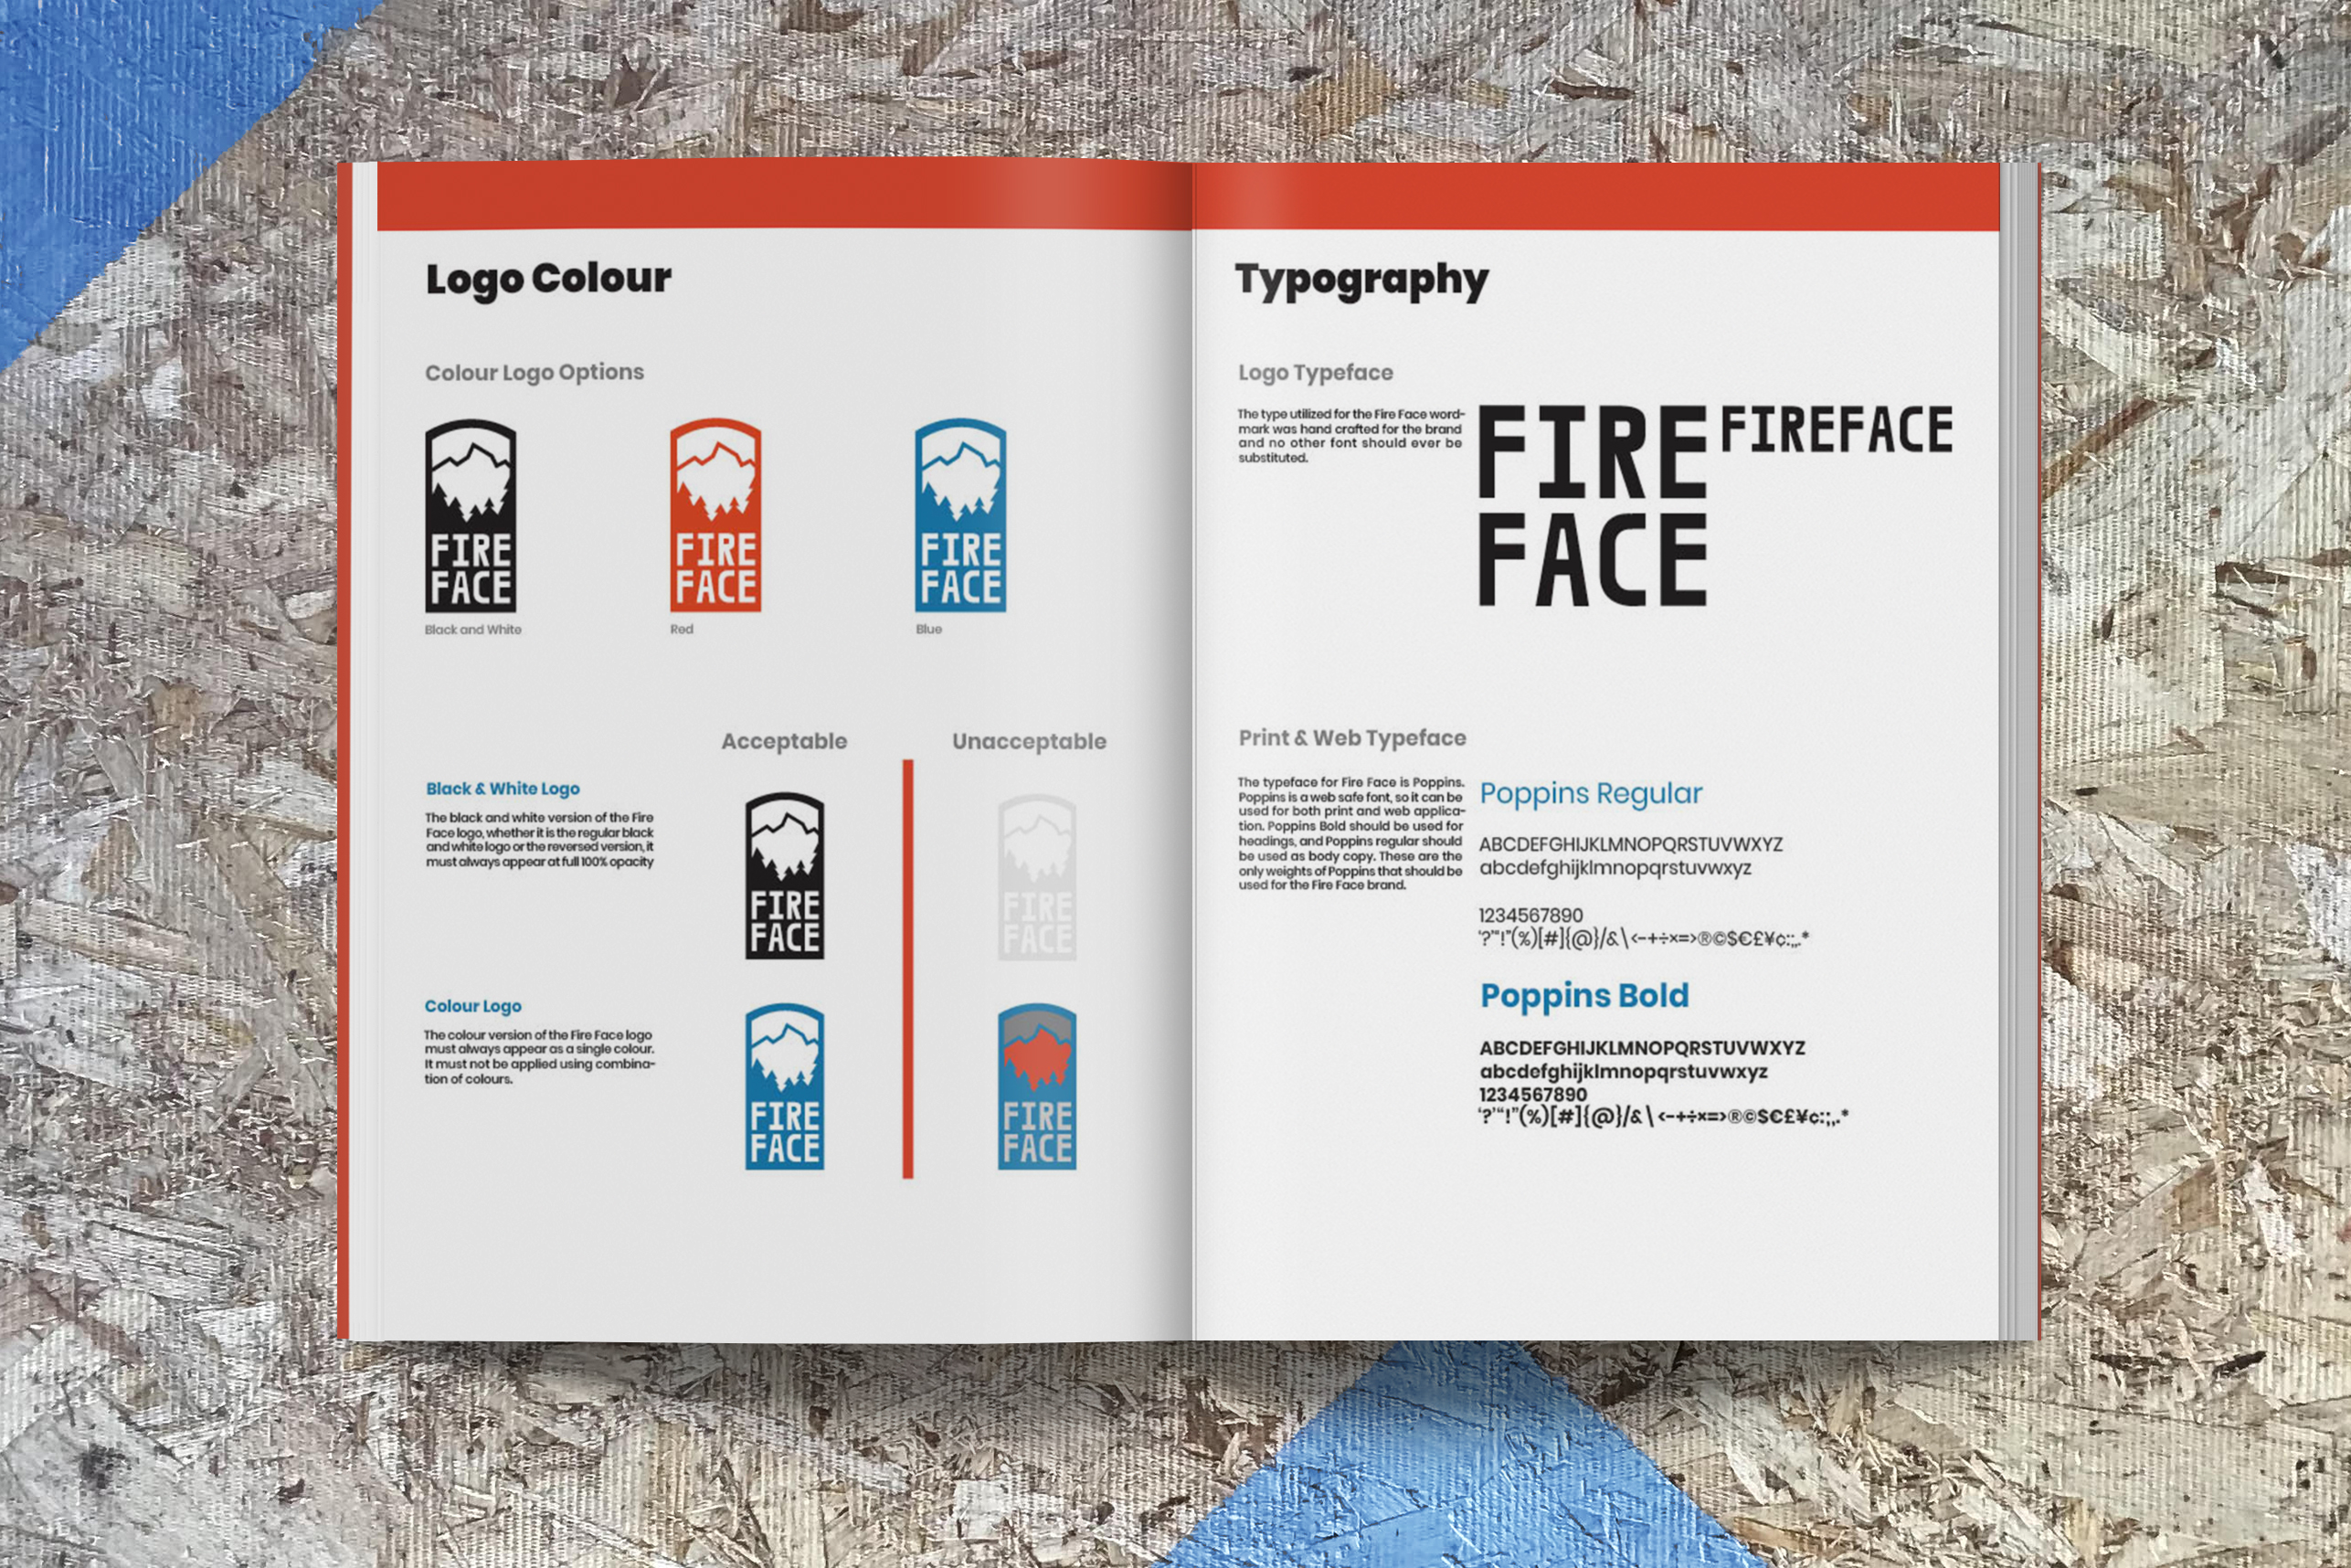 Image of the second page of the fire face brand guide